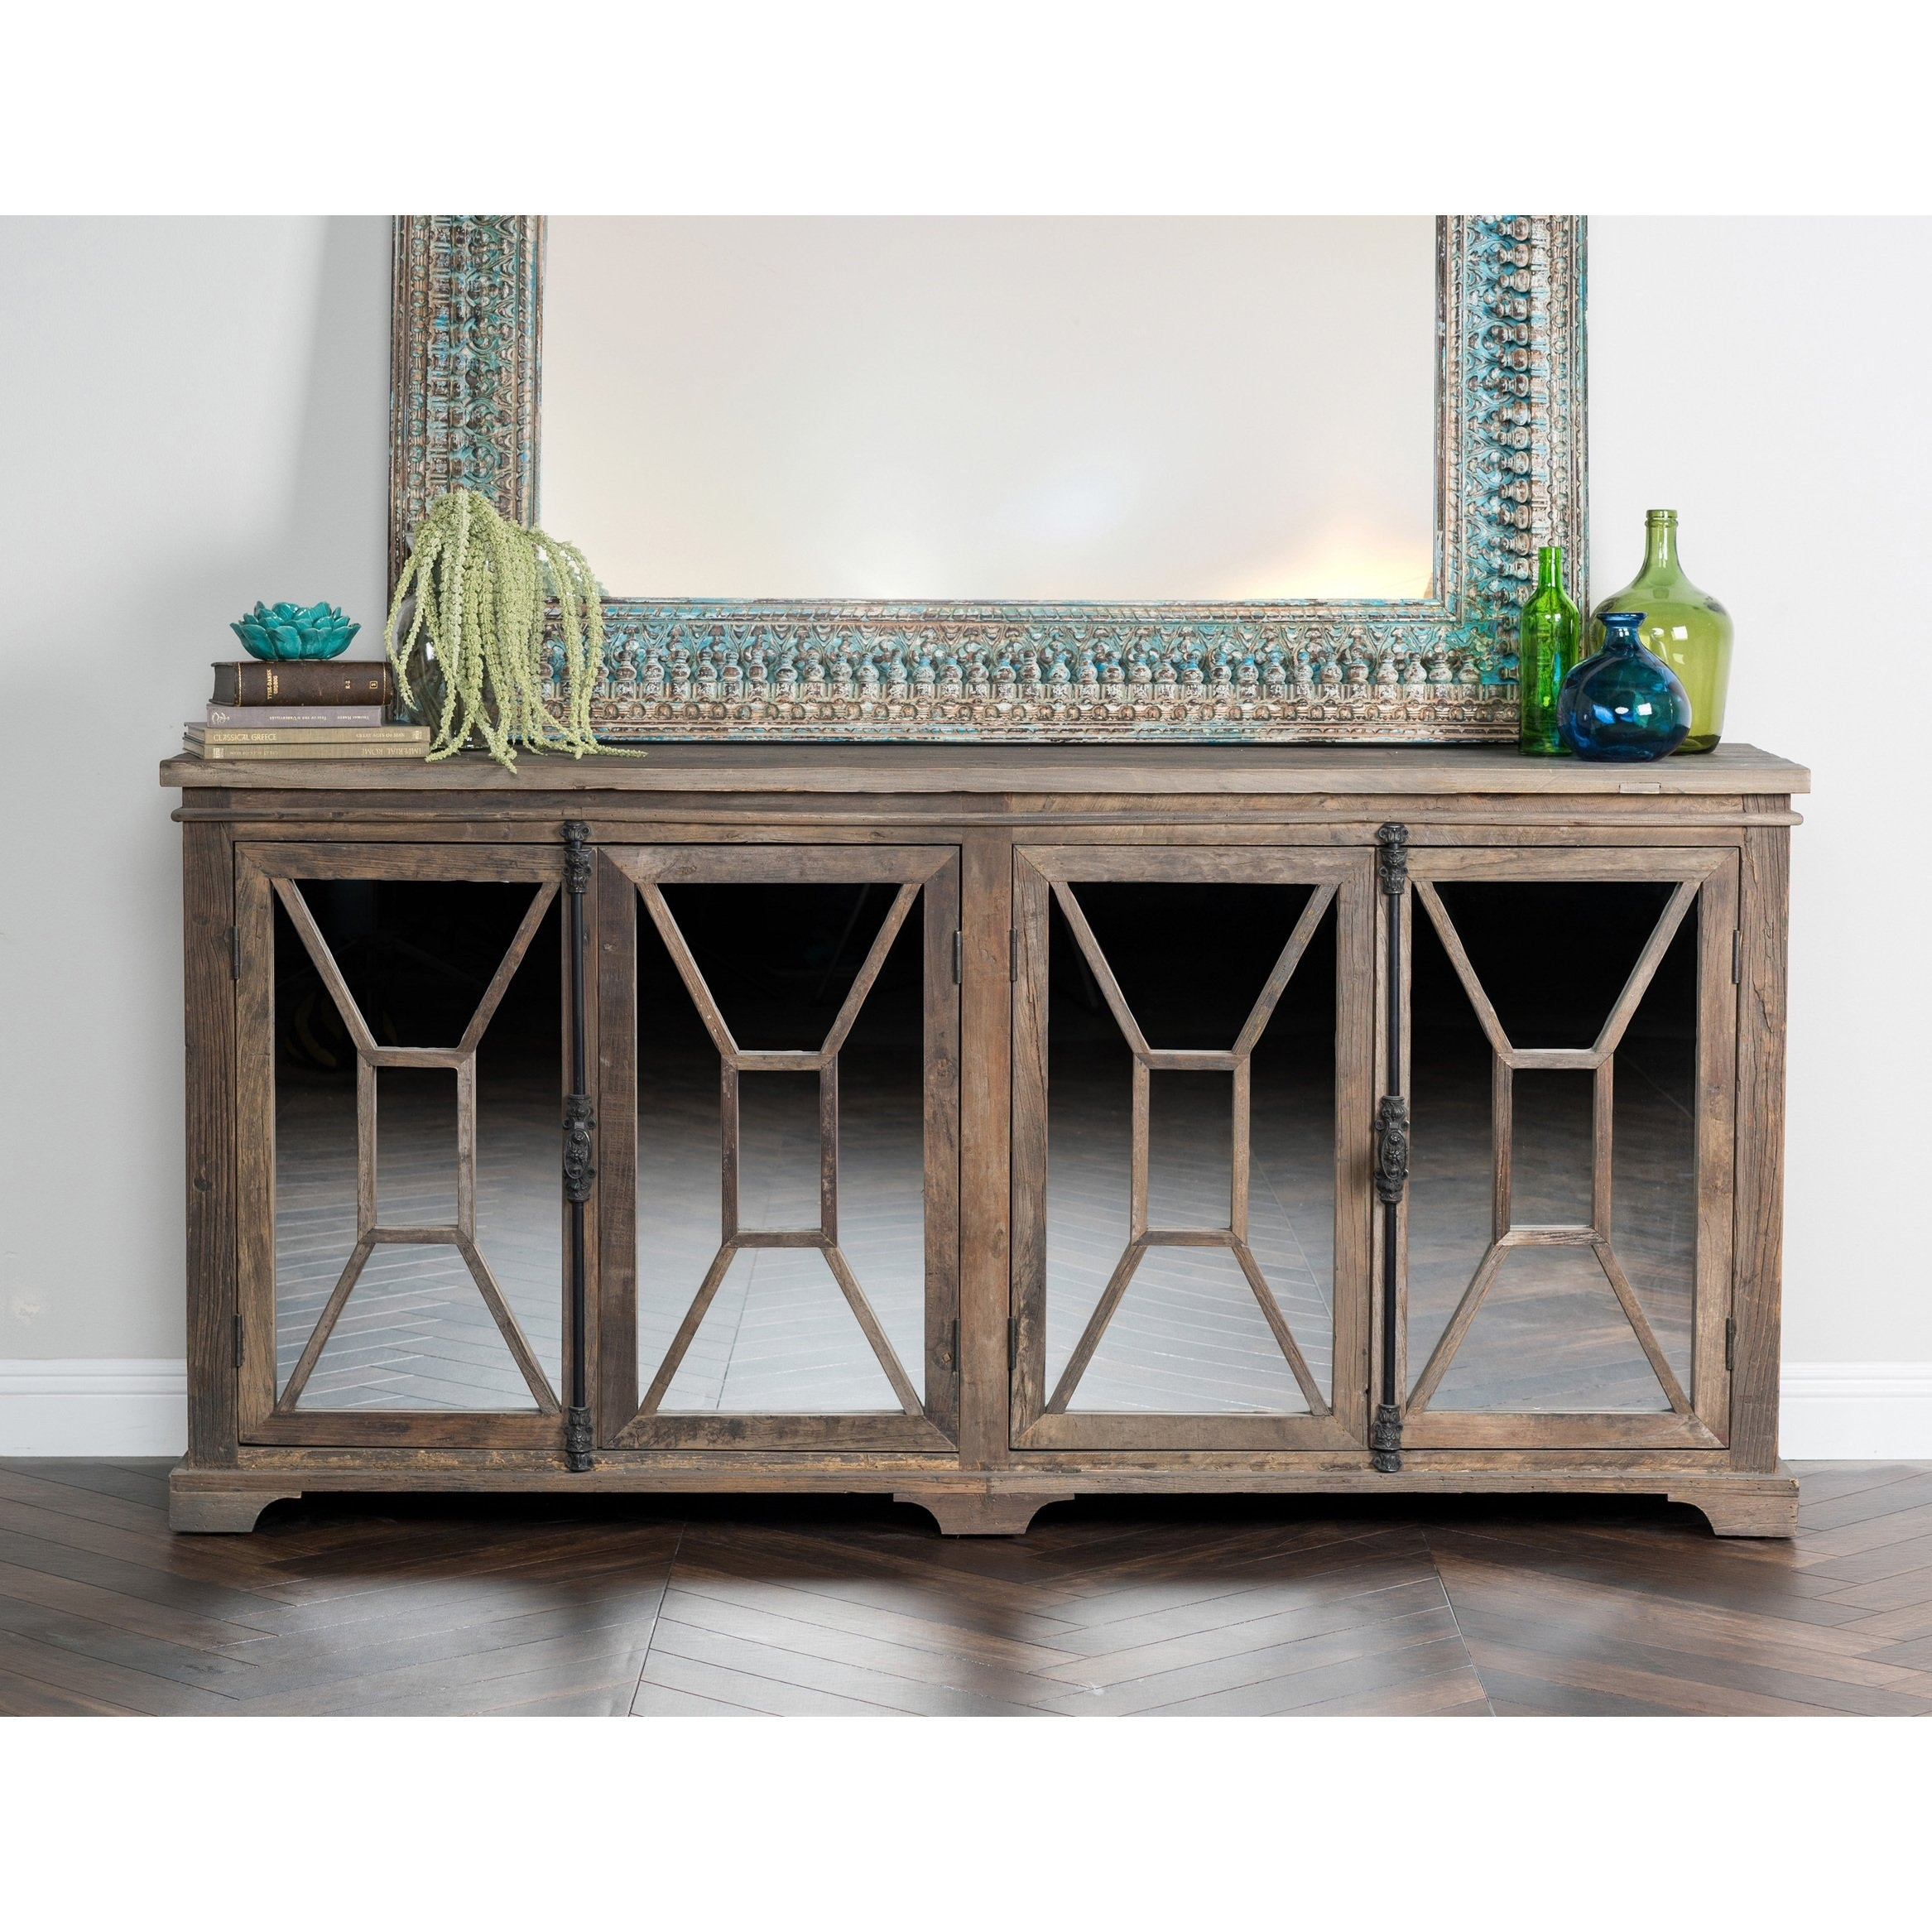 Shop Bradley Reclaimed Wood Mirrored 78-Inch Sideboardkosas Home within Reclaimed Pine & Iron 4-Door Sideboards (Image 21 of 30)